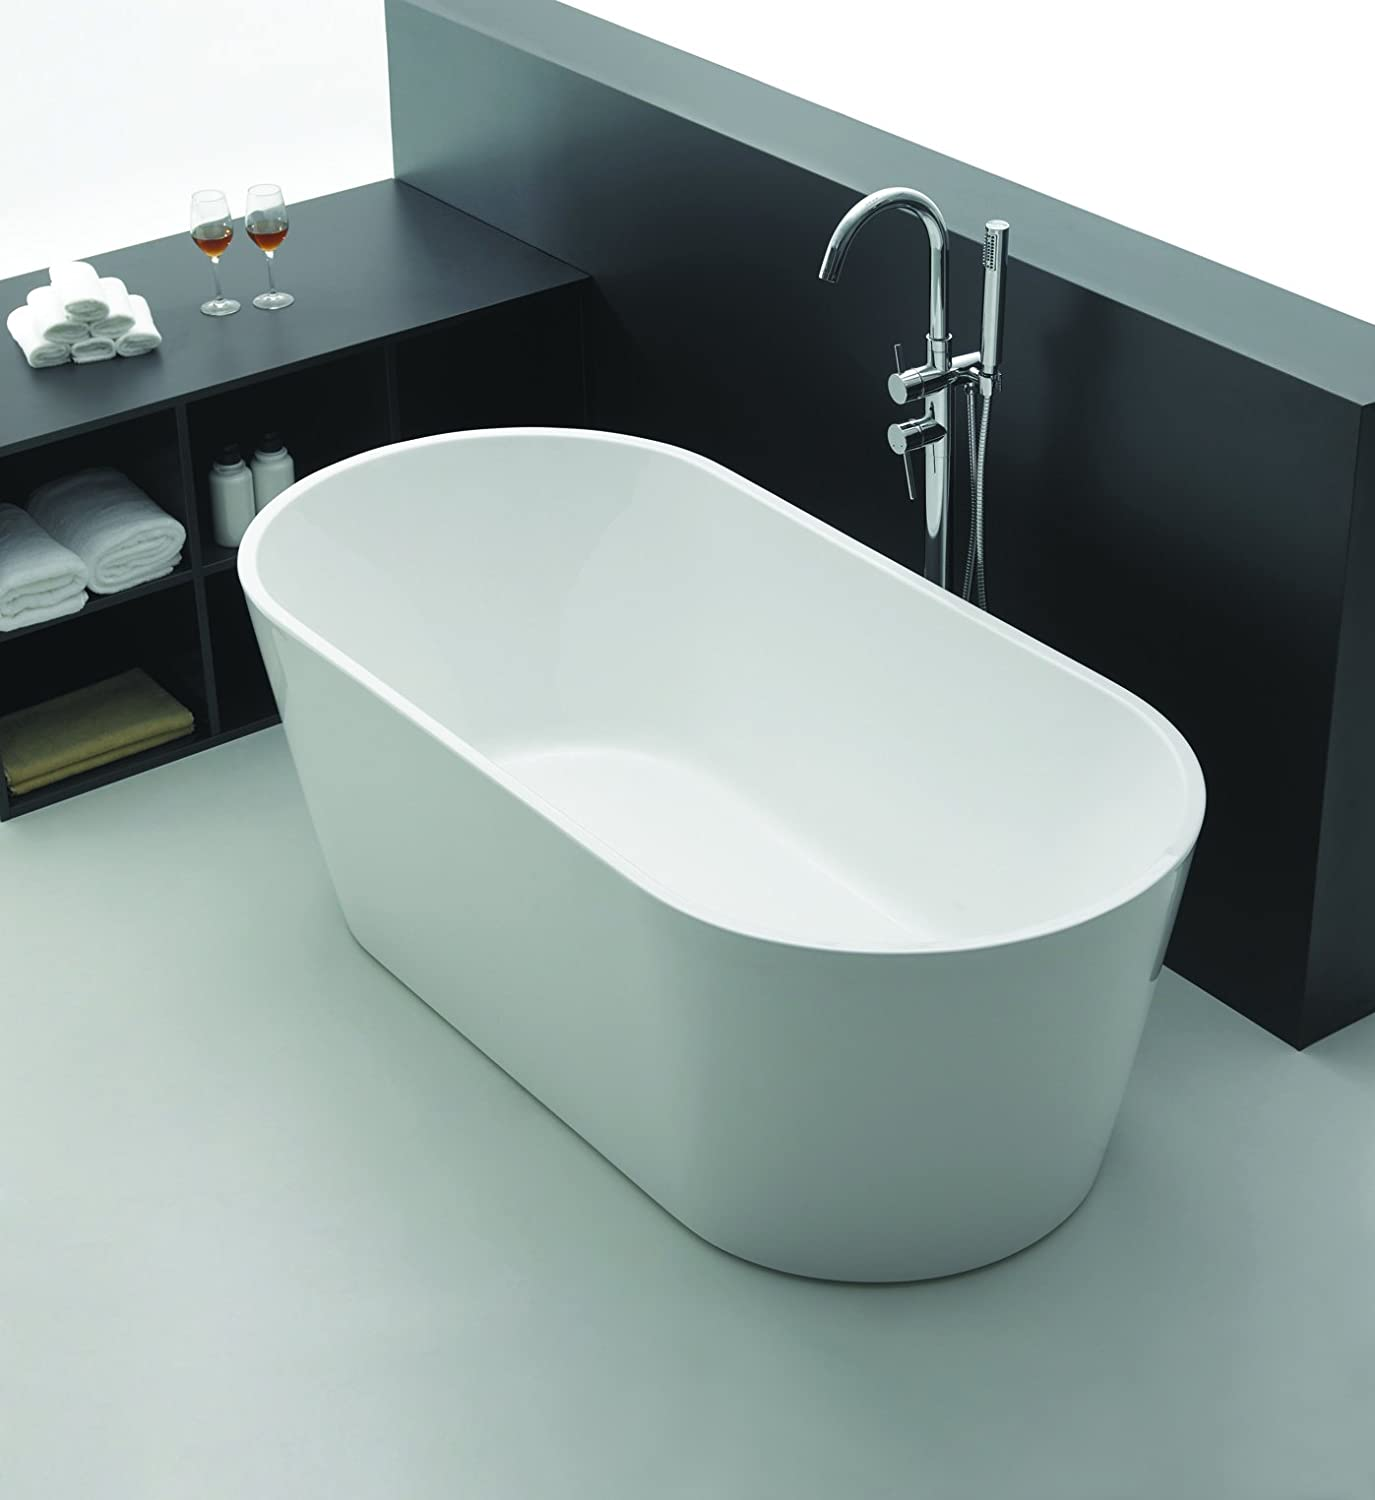 Empava A1507W Luxury Modern Bathroom Freestanding Bathtub - - Amazon.com